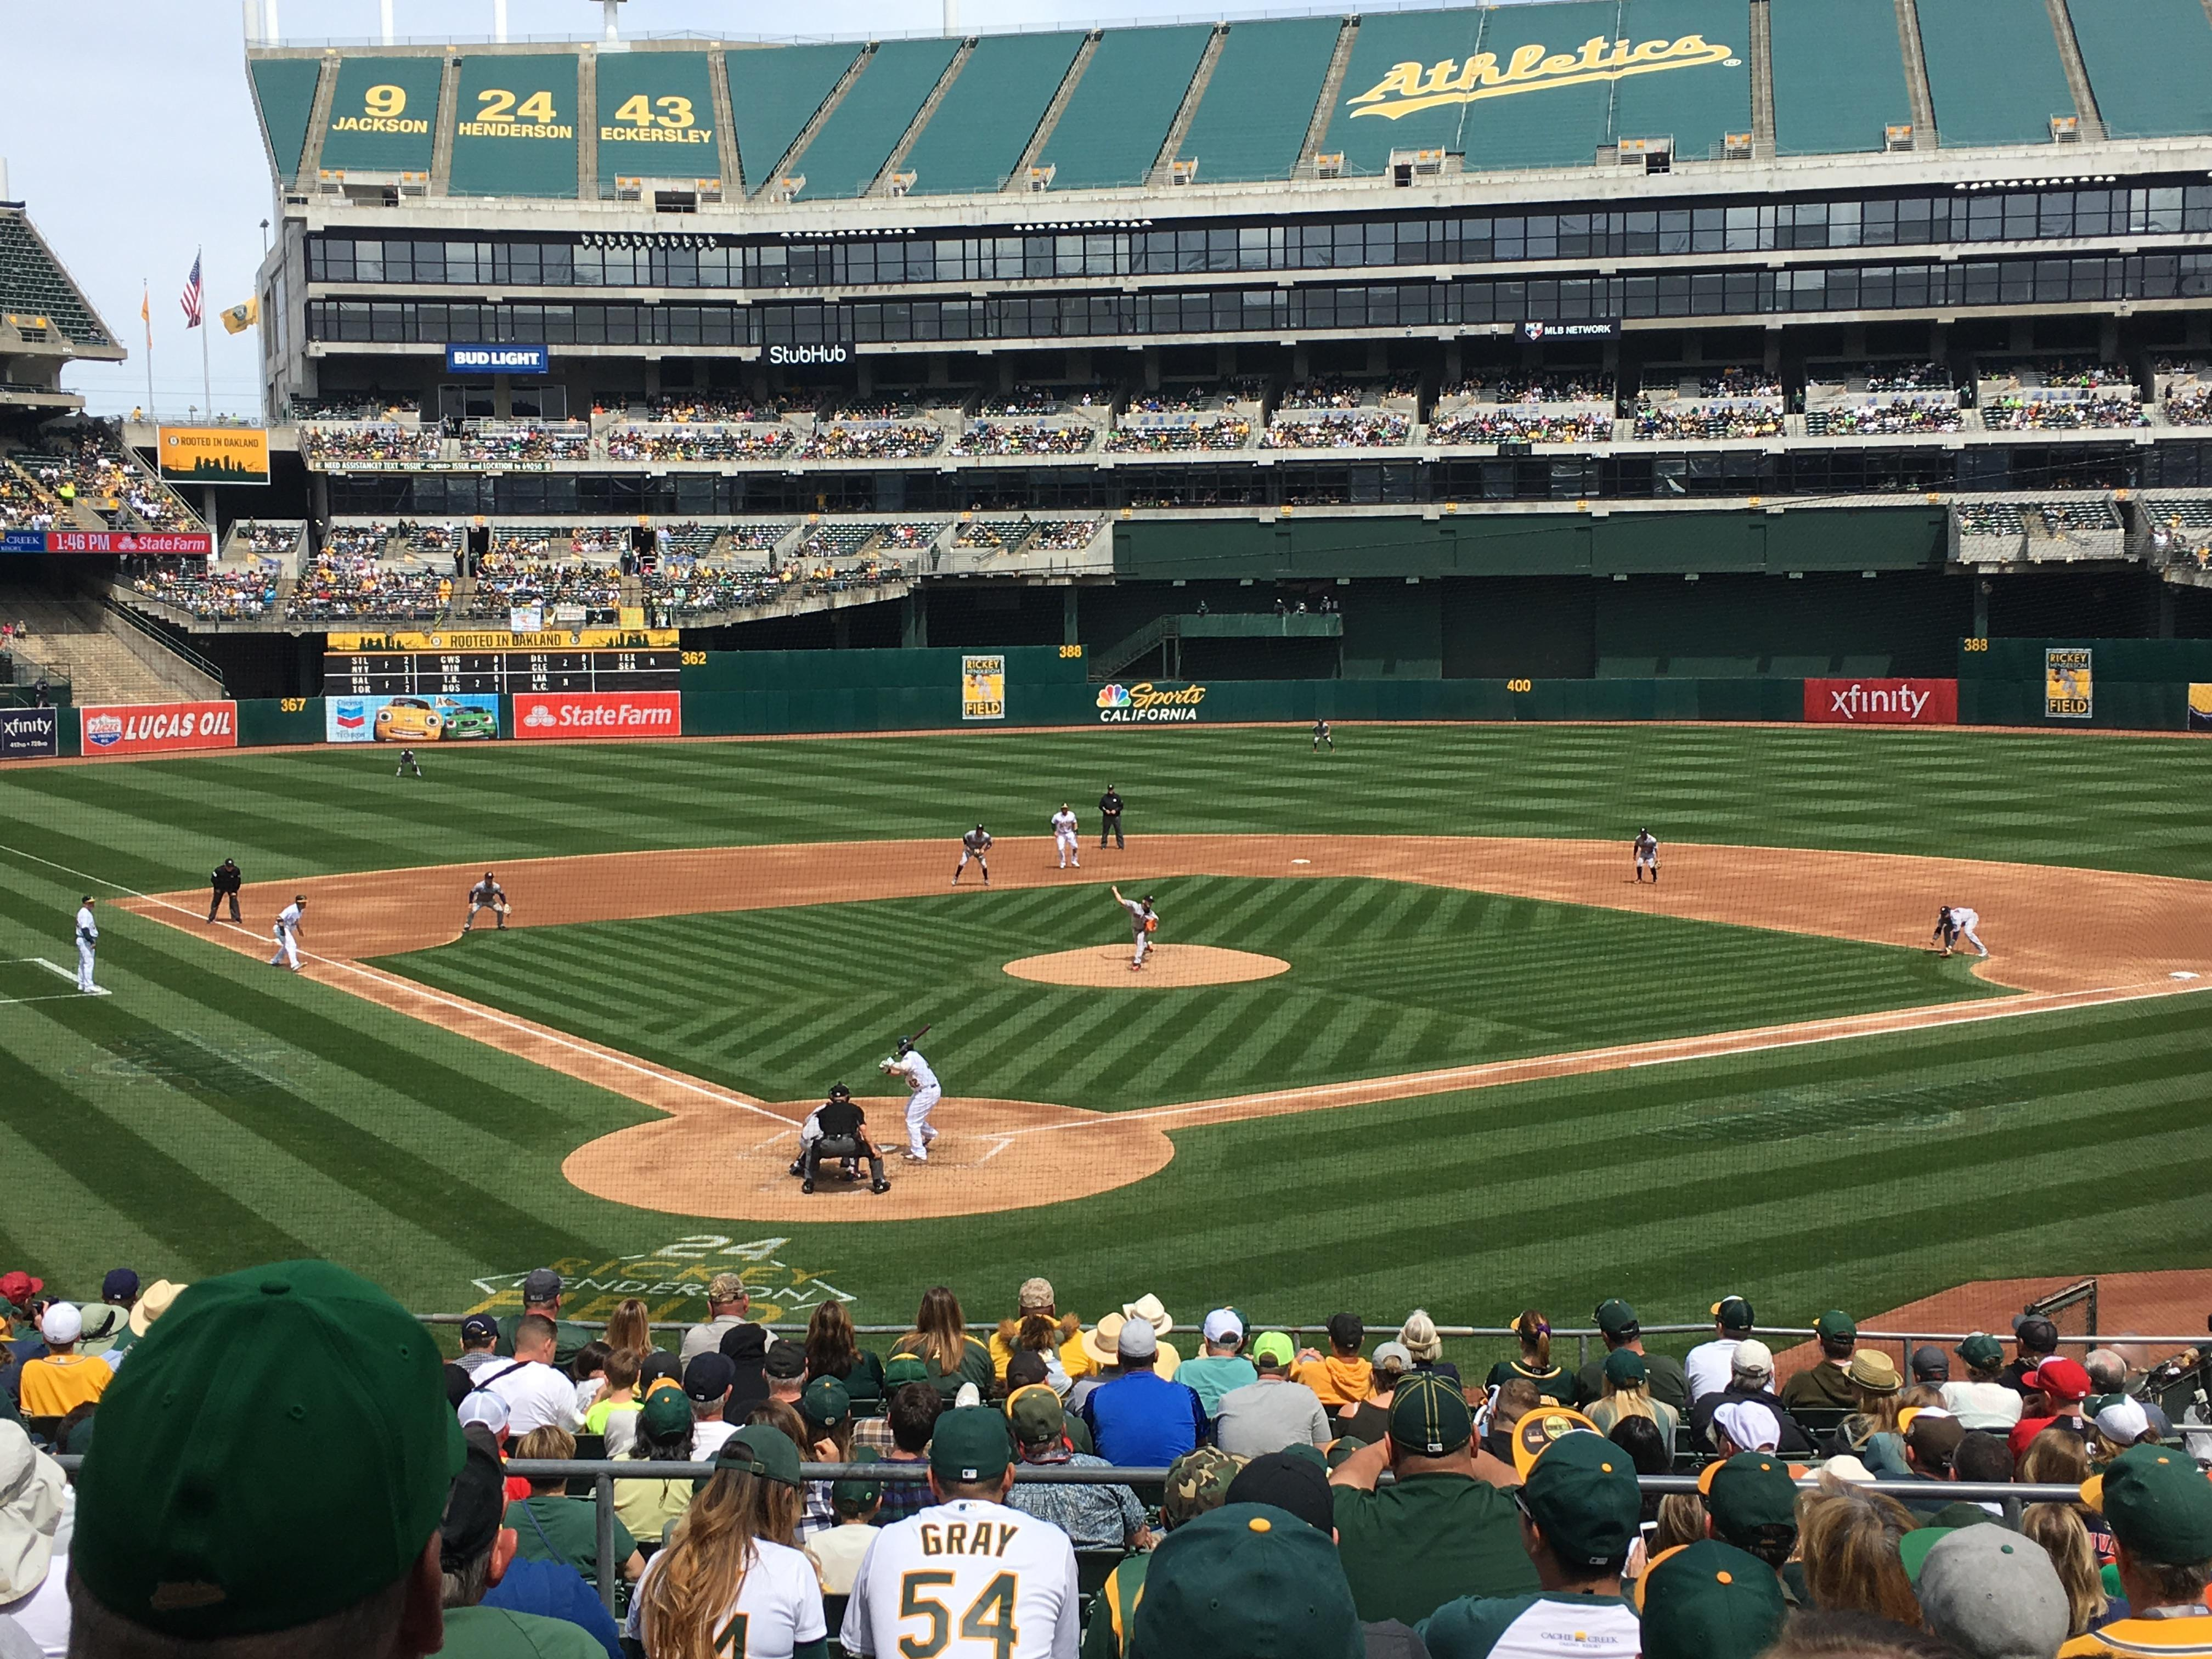 Oakland Coliseum Section 116 Row 18 Seat 6